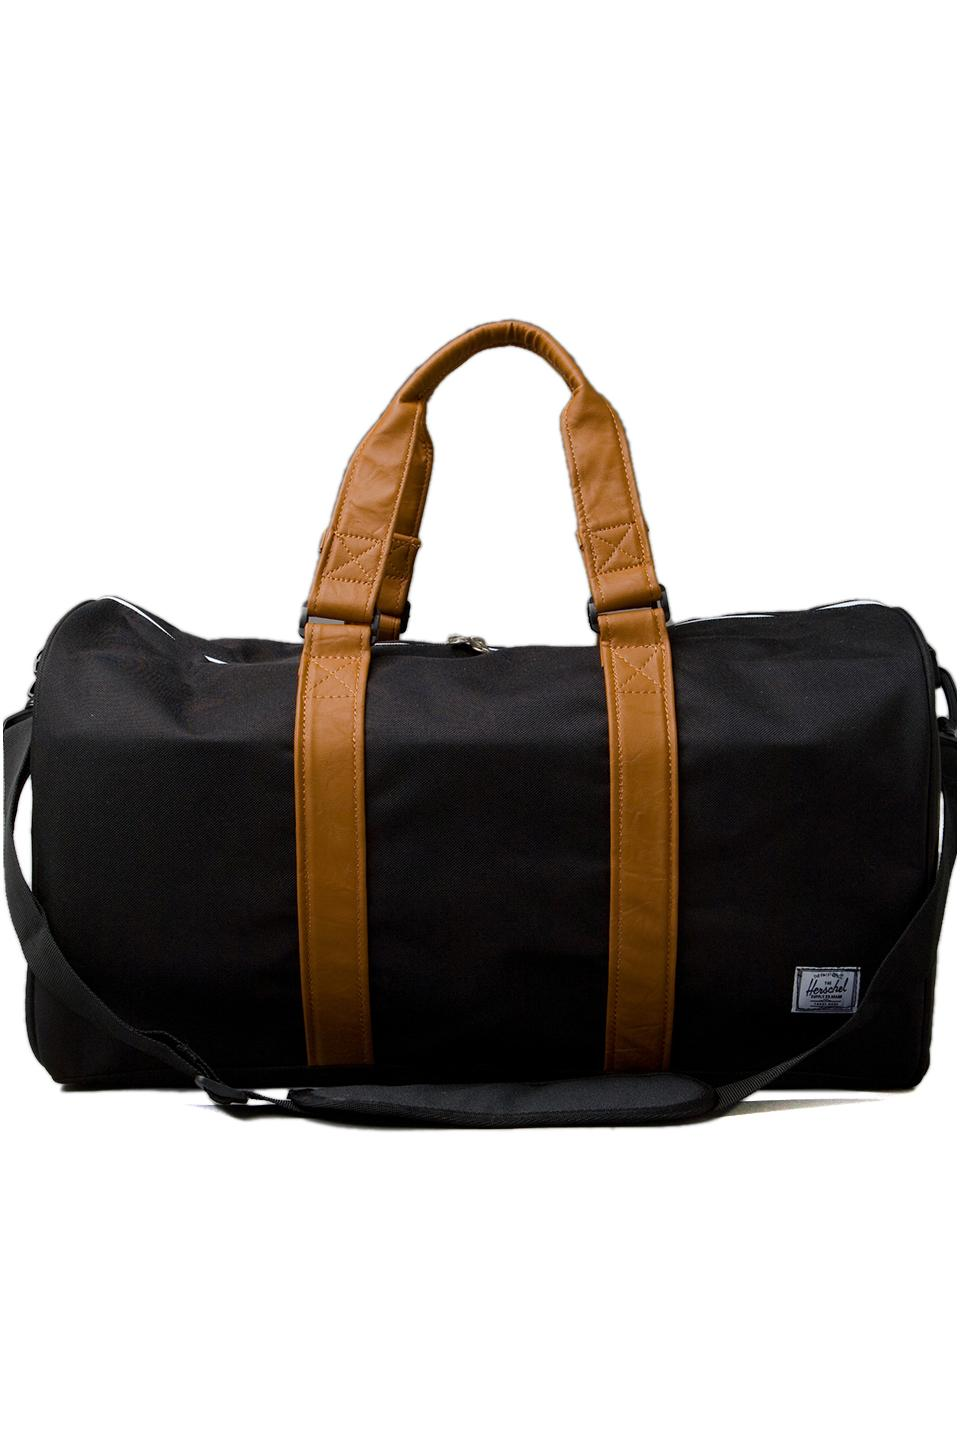 Herschel Supply Co. Sac de voyage Ravine en Noir/Marron